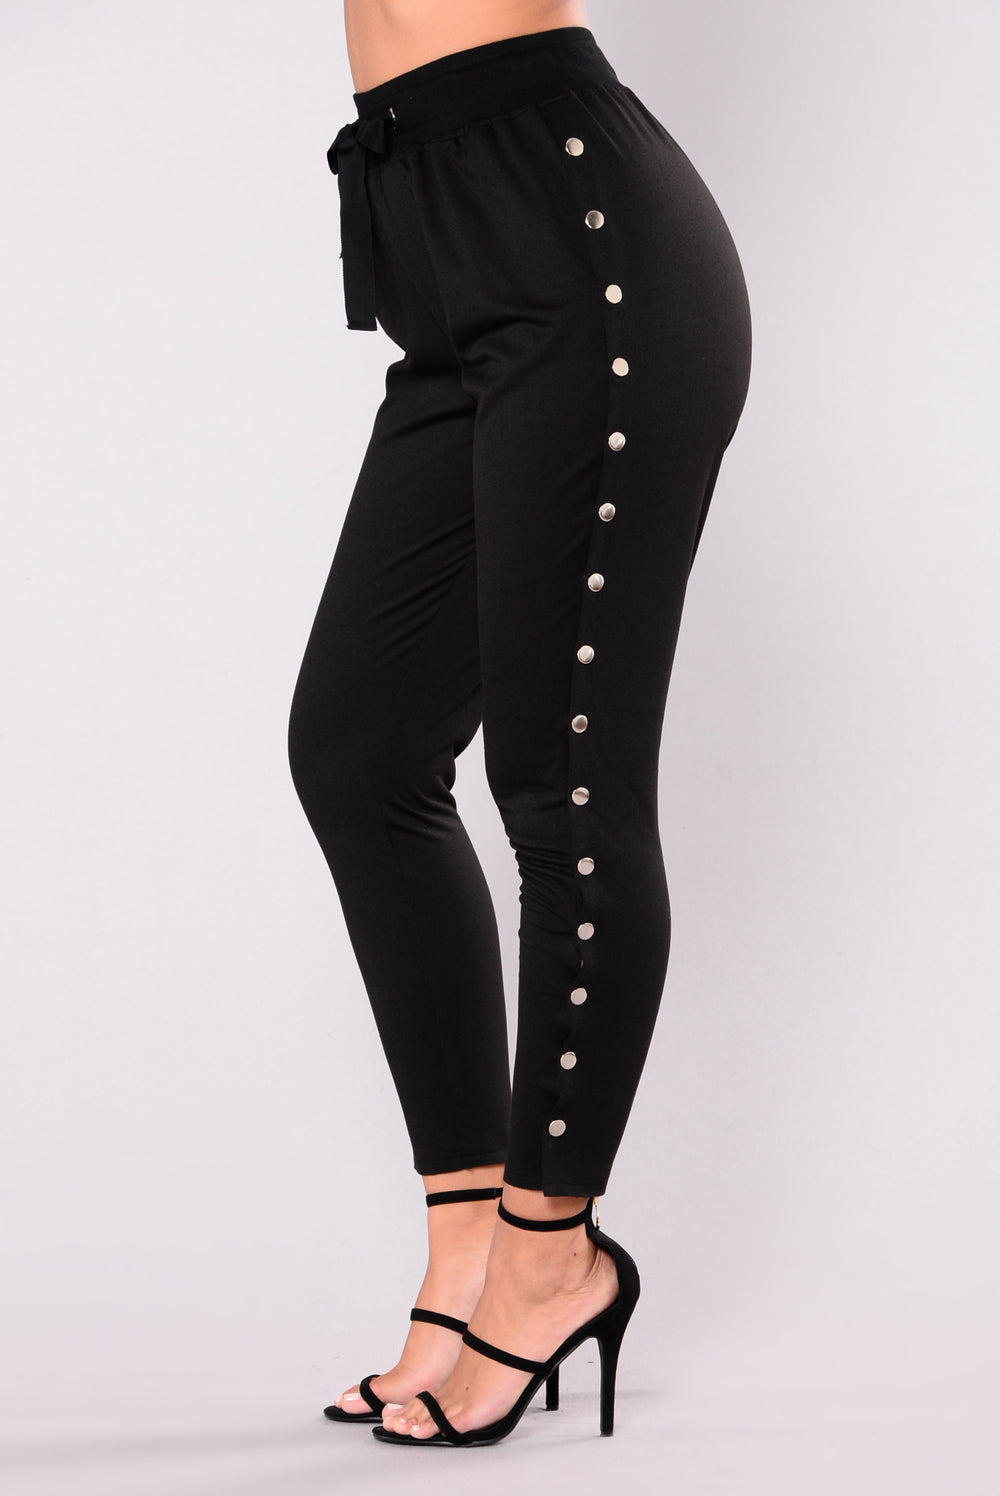 Skipping Stones Button Up Pants - Black